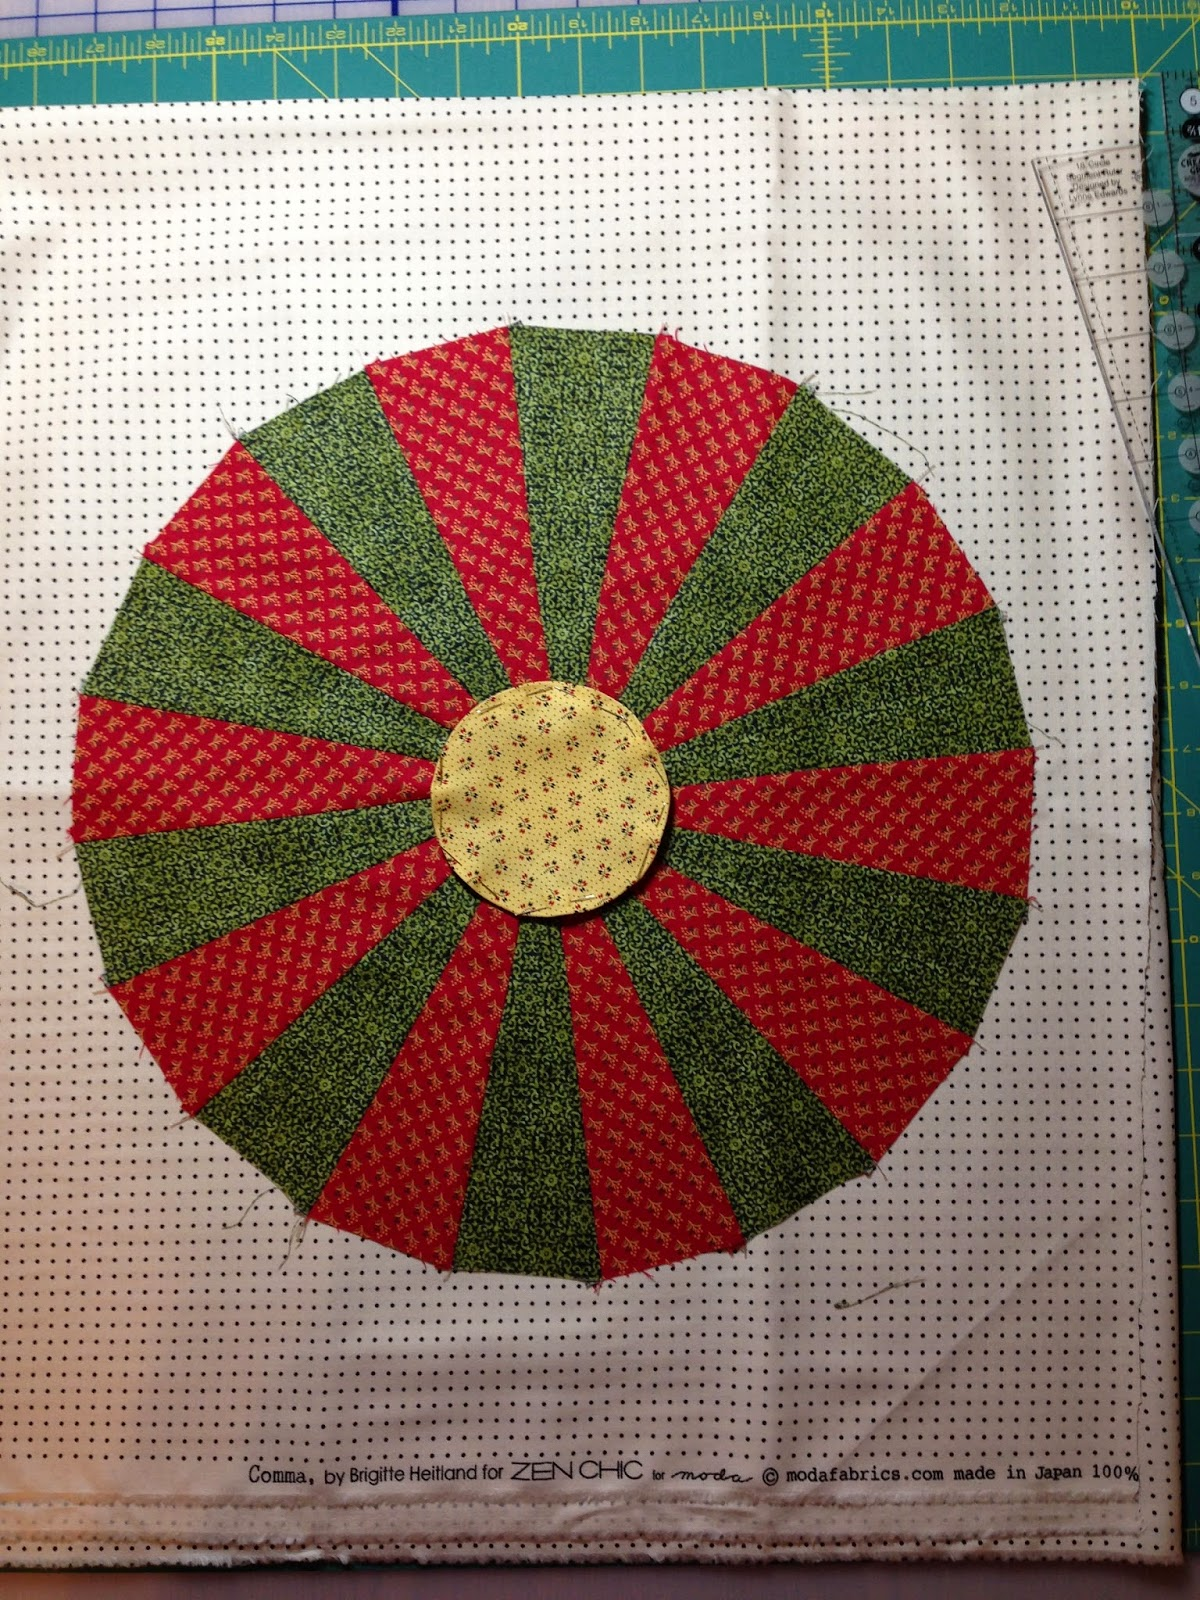 antique little quilt reproduced… 2 doll quilts made to